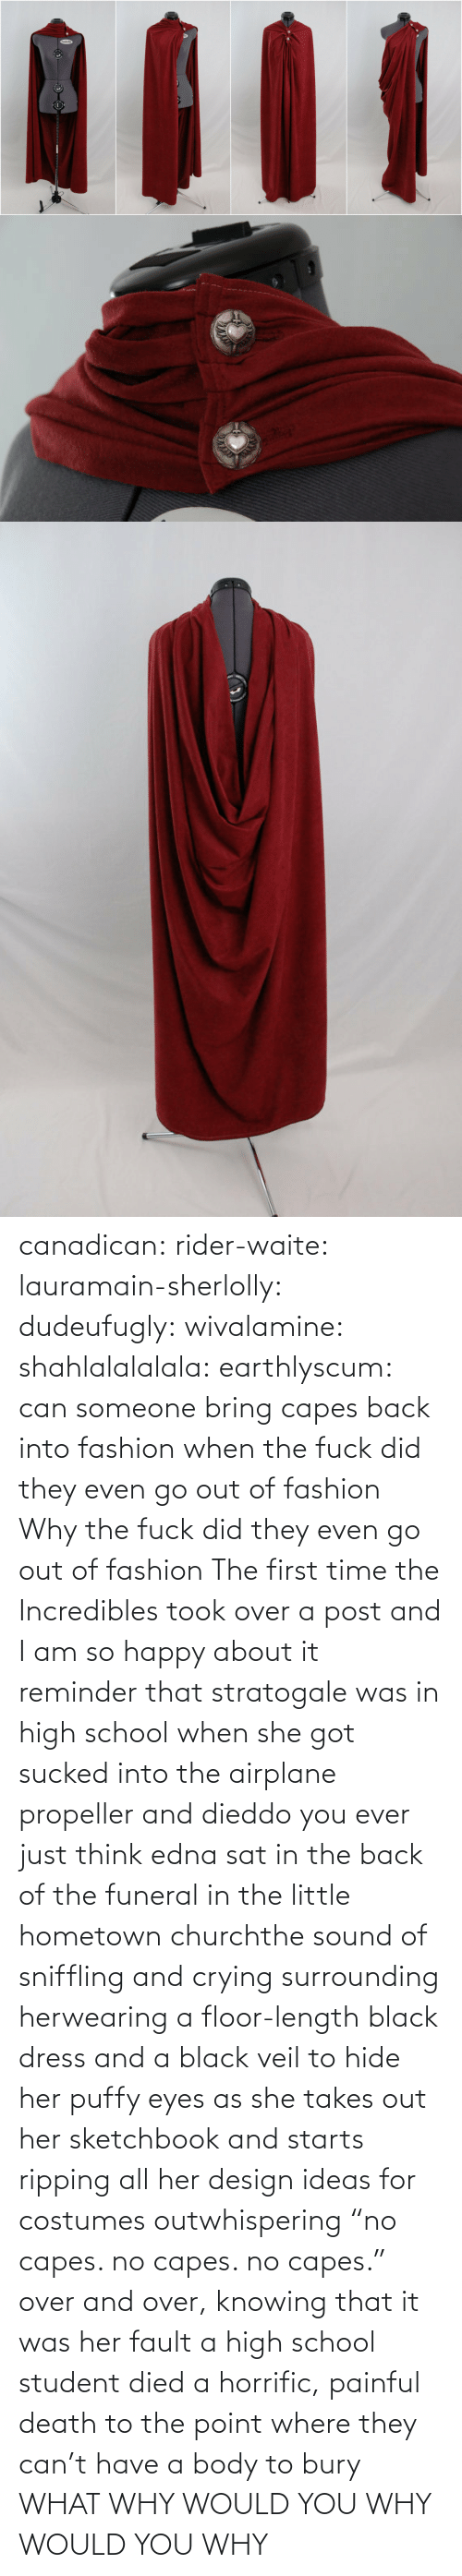 """No Capes: twinfit canadican:  rider-waite:  lauramain-sherlolly:  dudeufugly:  wivalamine:  shahlalalalala:  earthlyscum:  can someone bring capes back into fashion  when the fuck did they even go out of fashion  Why the fuck did they even go out of fashion         The first time the Incredibles took over a post and I am so happy about it  reminder that stratogale was in high school when she got sucked into the airplane propeller and dieddo you ever just think edna sat in the back of the funeral in the little hometown churchthe sound of sniffling and crying surrounding herwearing a floor-length black dress and a black veil to hide her puffy eyes as she takes out her sketchbook and starts ripping all her design ideas for costumes outwhispering """"no capes. no capes. no capes."""" over and over, knowing that it was her fault a high school student died a horrific, painful death to the point where they can't have a body to bury  WHAT WHY WOULD YOU WHY WOULD YOU WHY"""